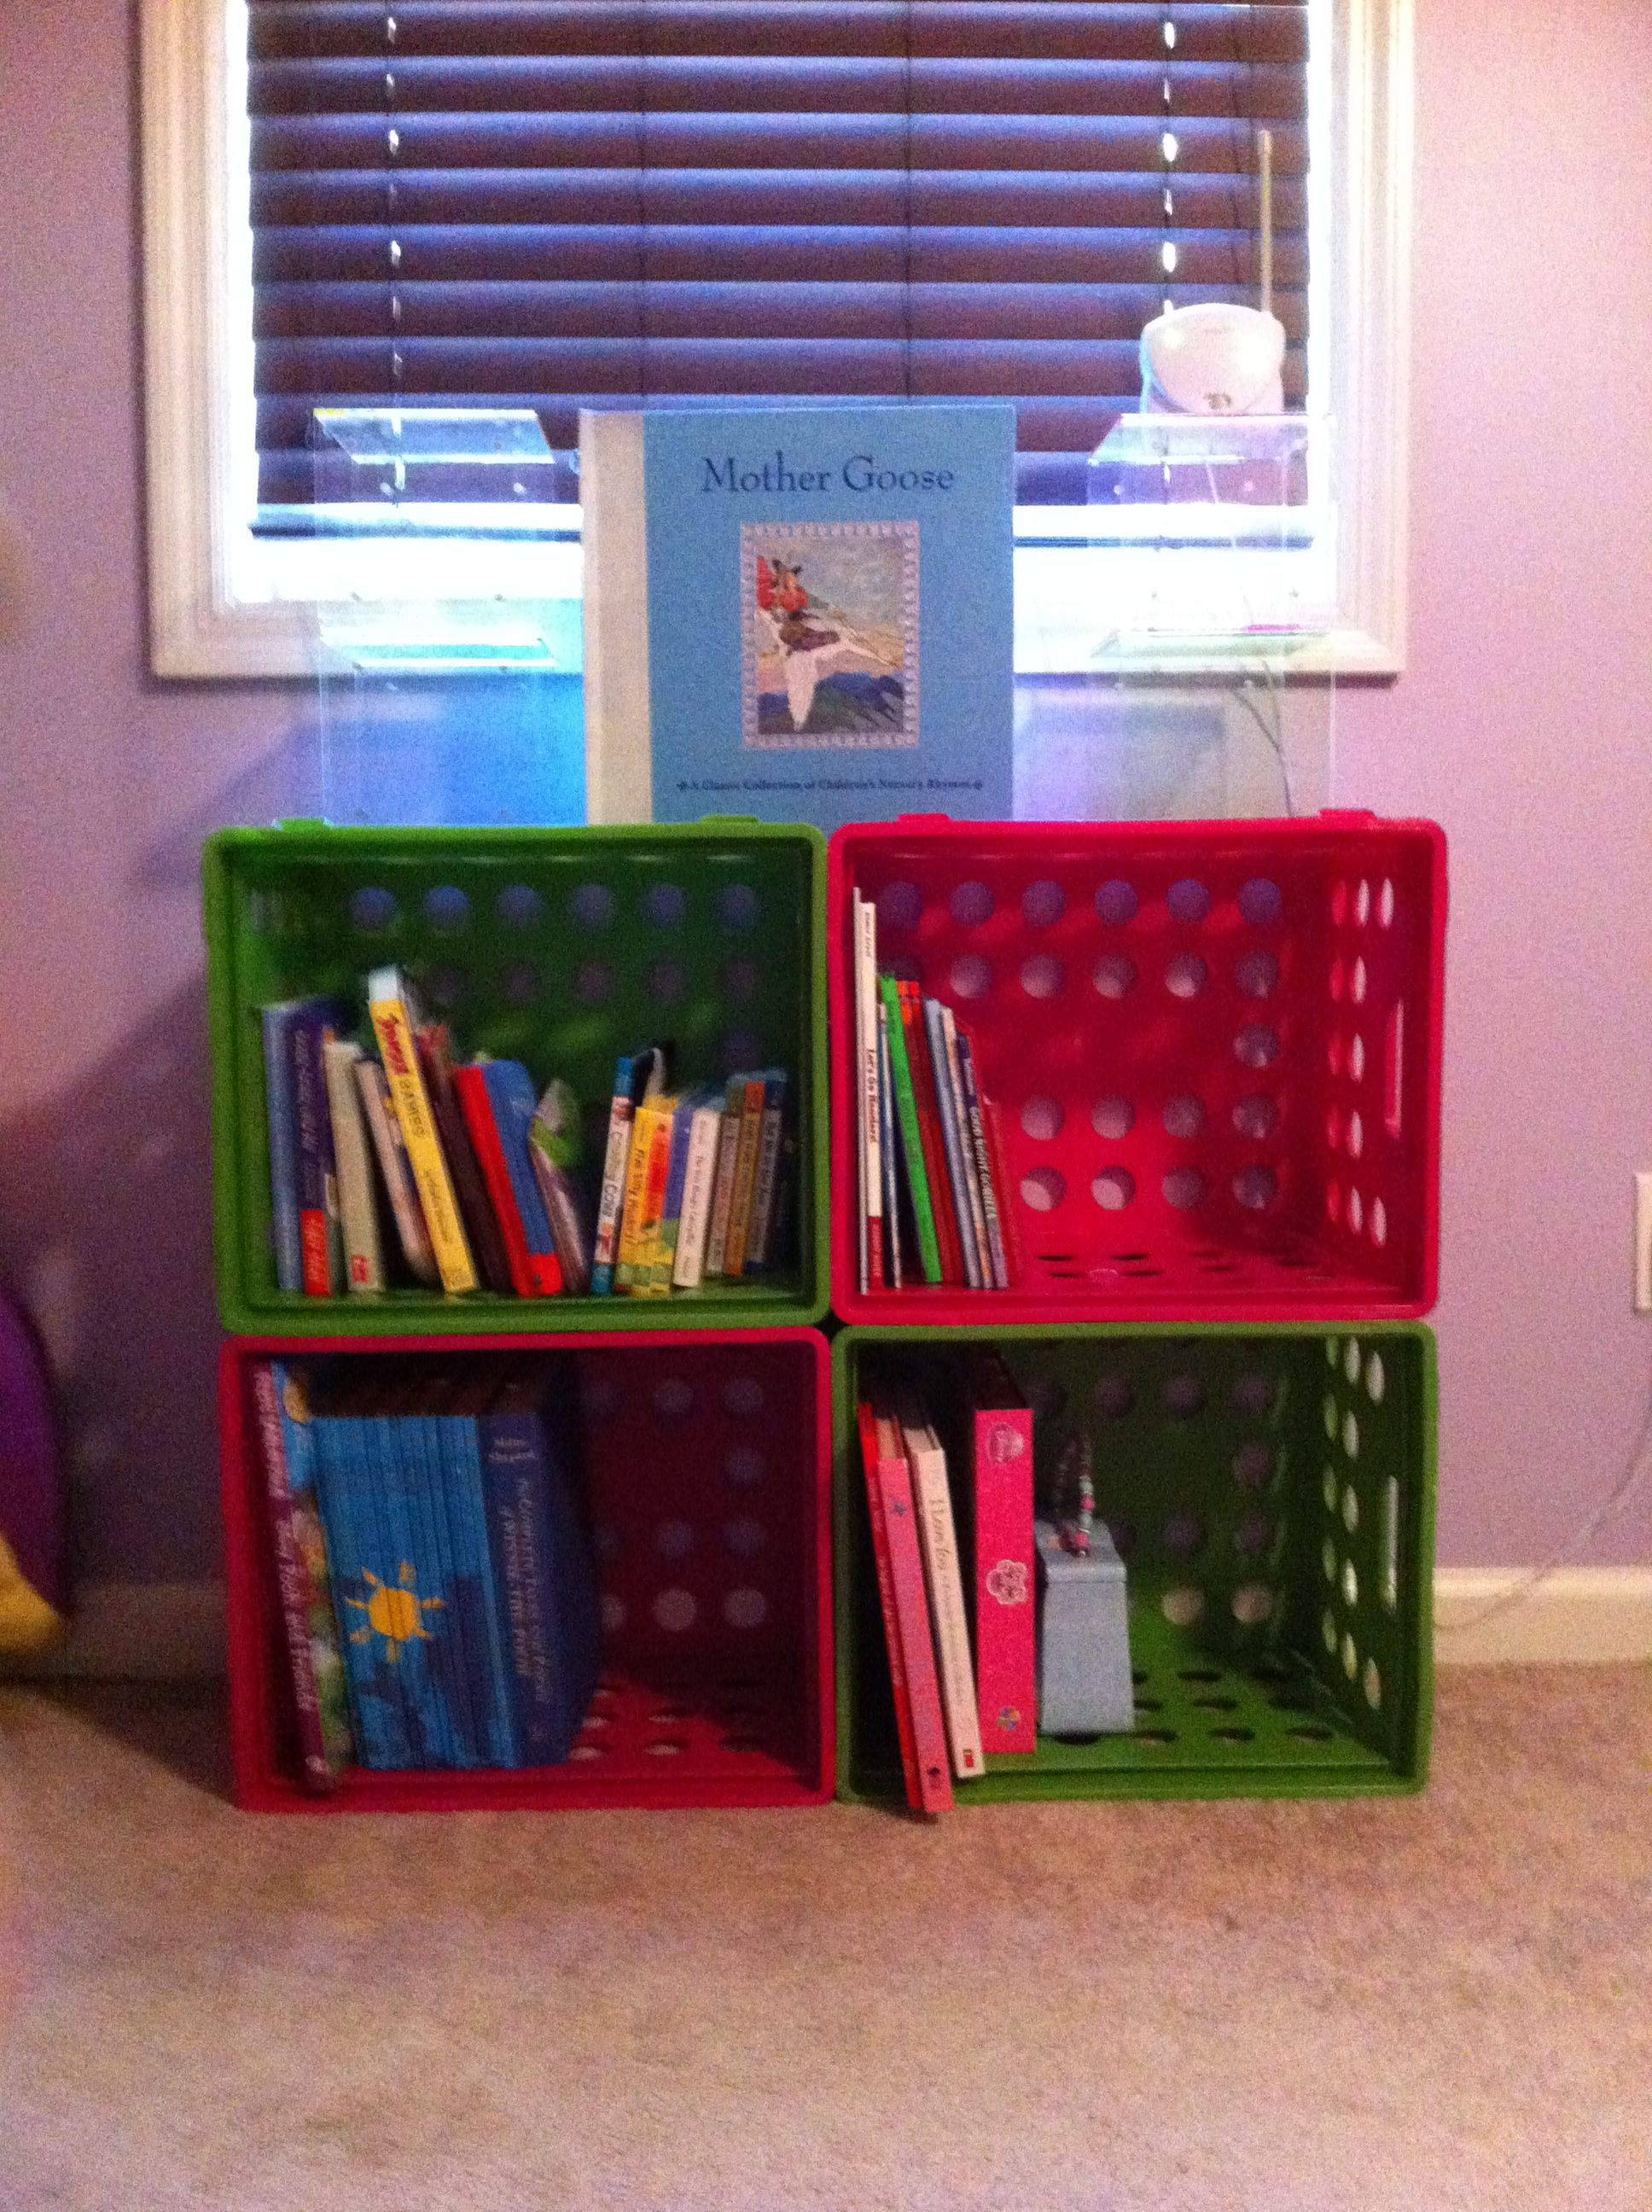 hannah s 10 bookcase 4 plastic crates from walmart zip ties rh pinterest com